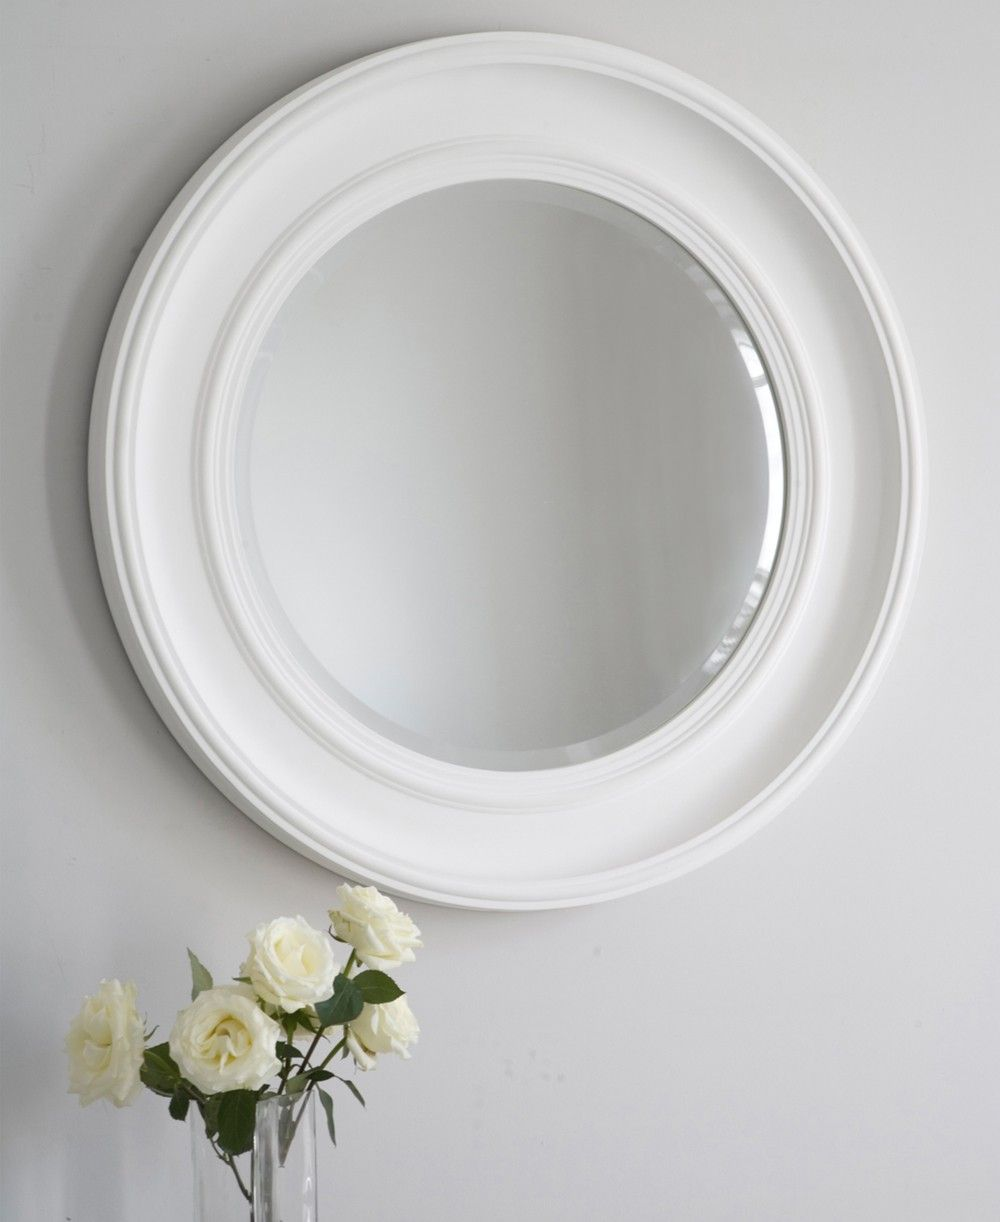 Large White Wall Mirror an easy round mirror ideal for a living room, hallway or bathroom